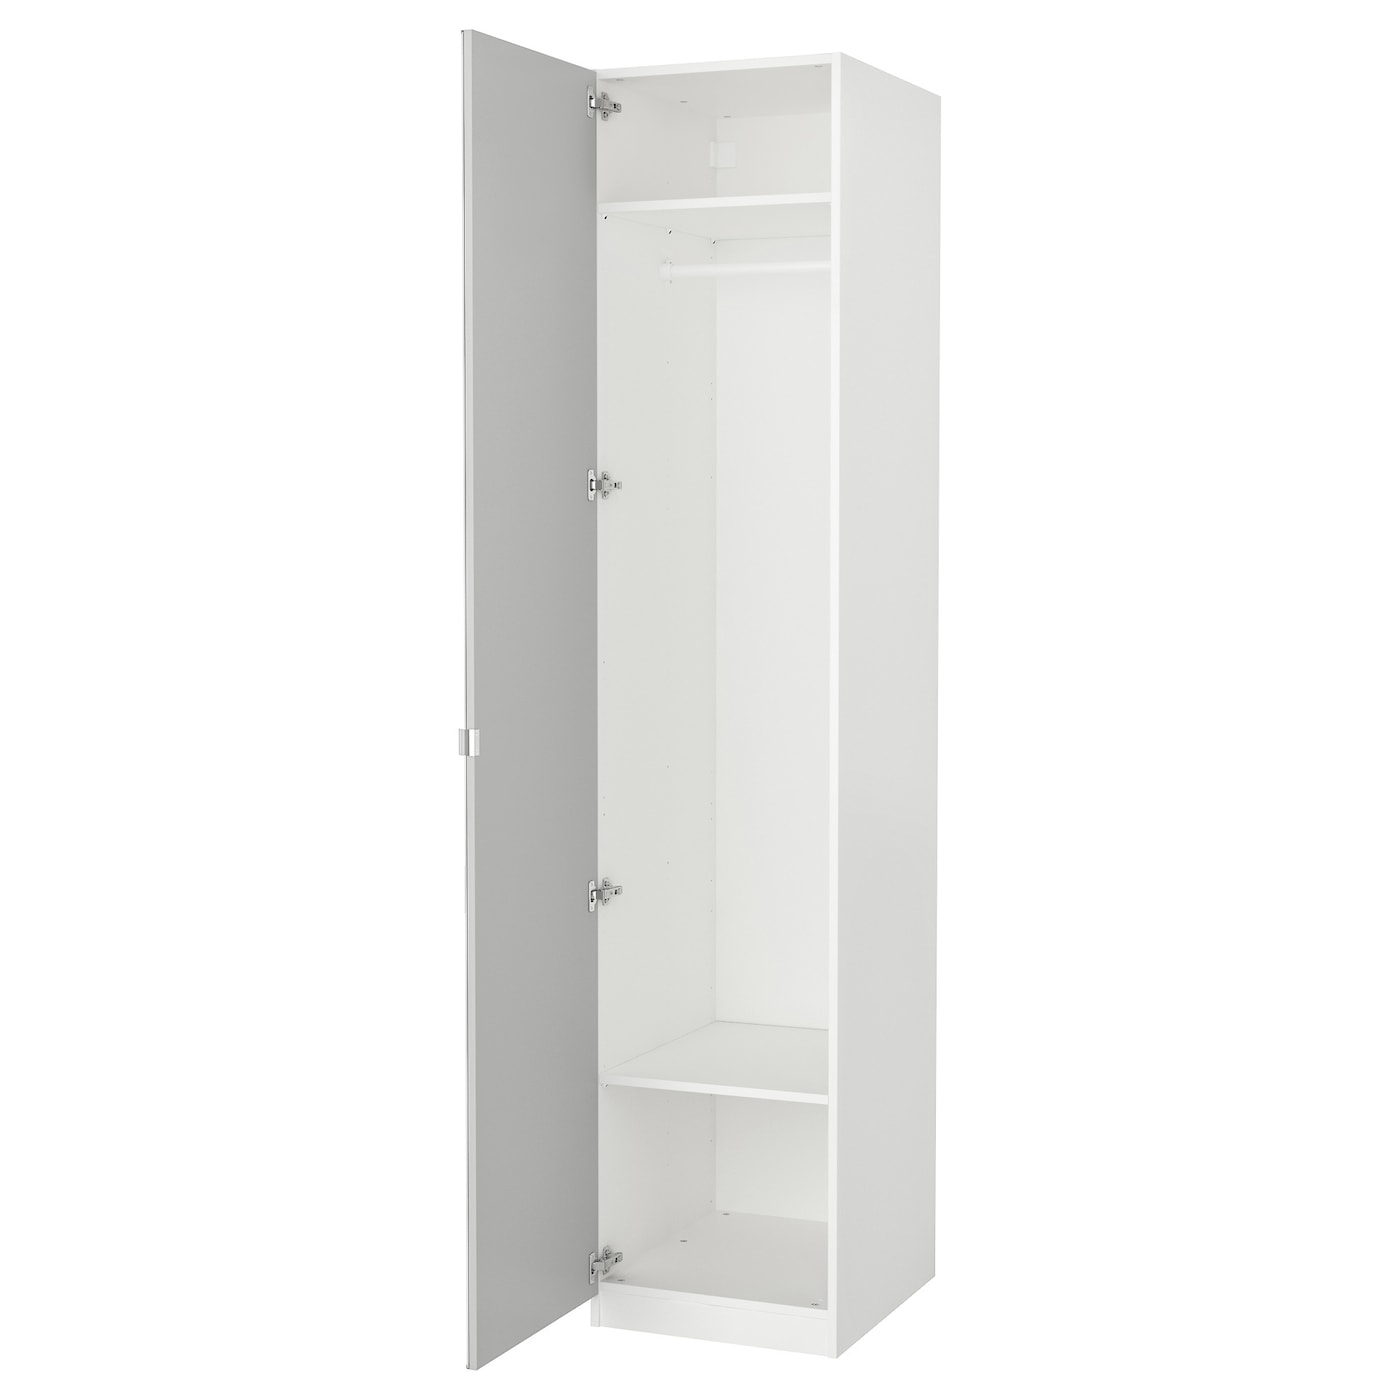 pax armoire penderie blanc vikedal miroir 50 x 60 x 236 cm. Black Bedroom Furniture Sets. Home Design Ideas